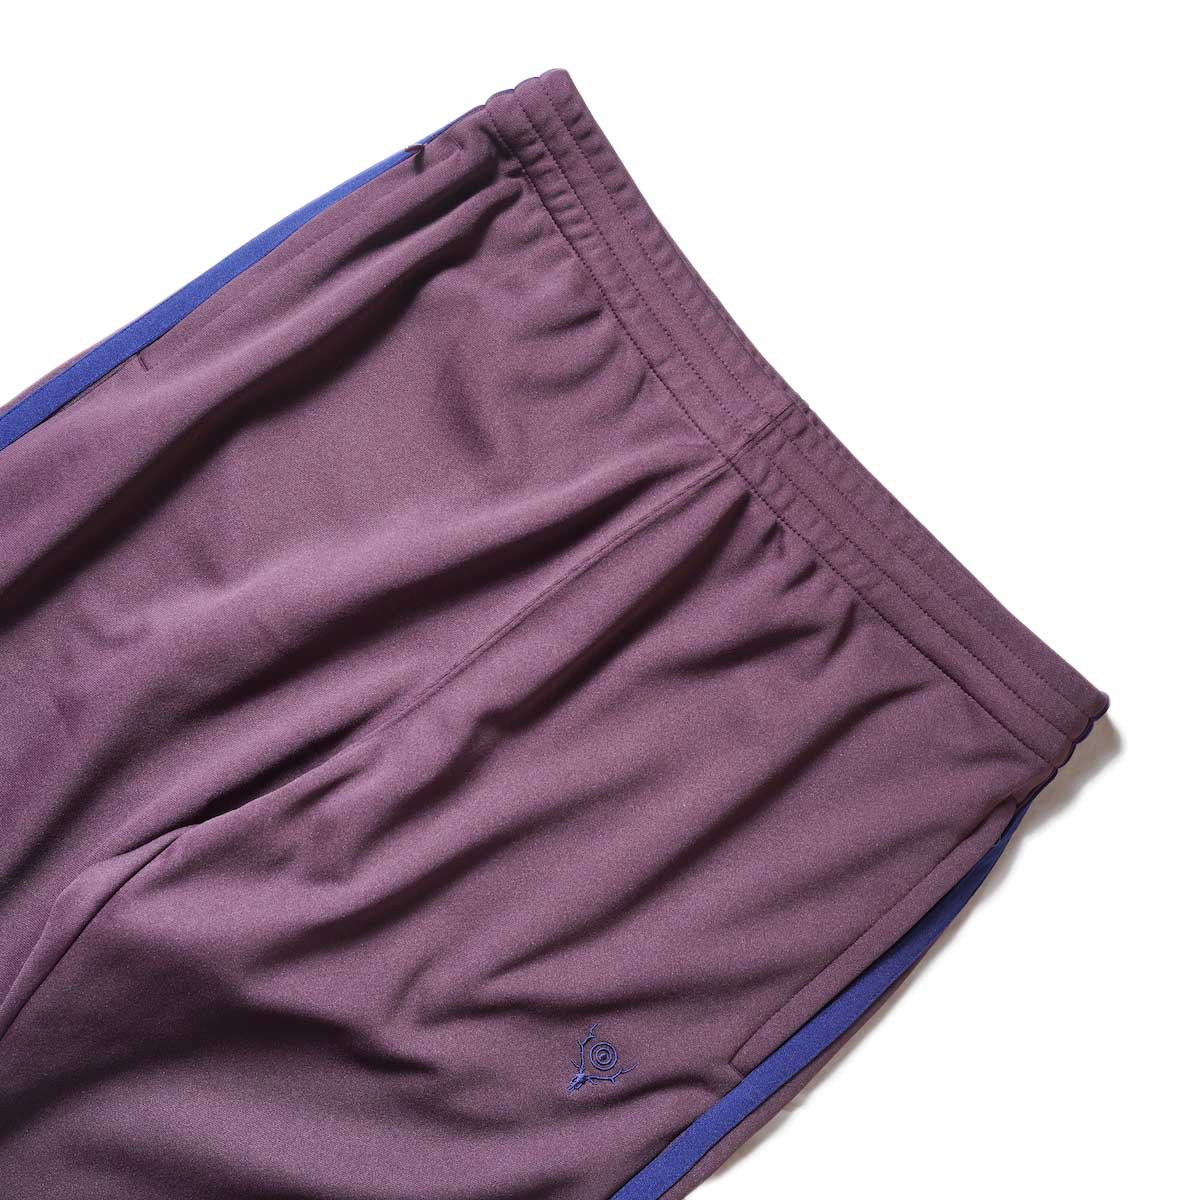 South2 West8 / Trainer Pants - Poly Smooth (Burgundy)ウエスト